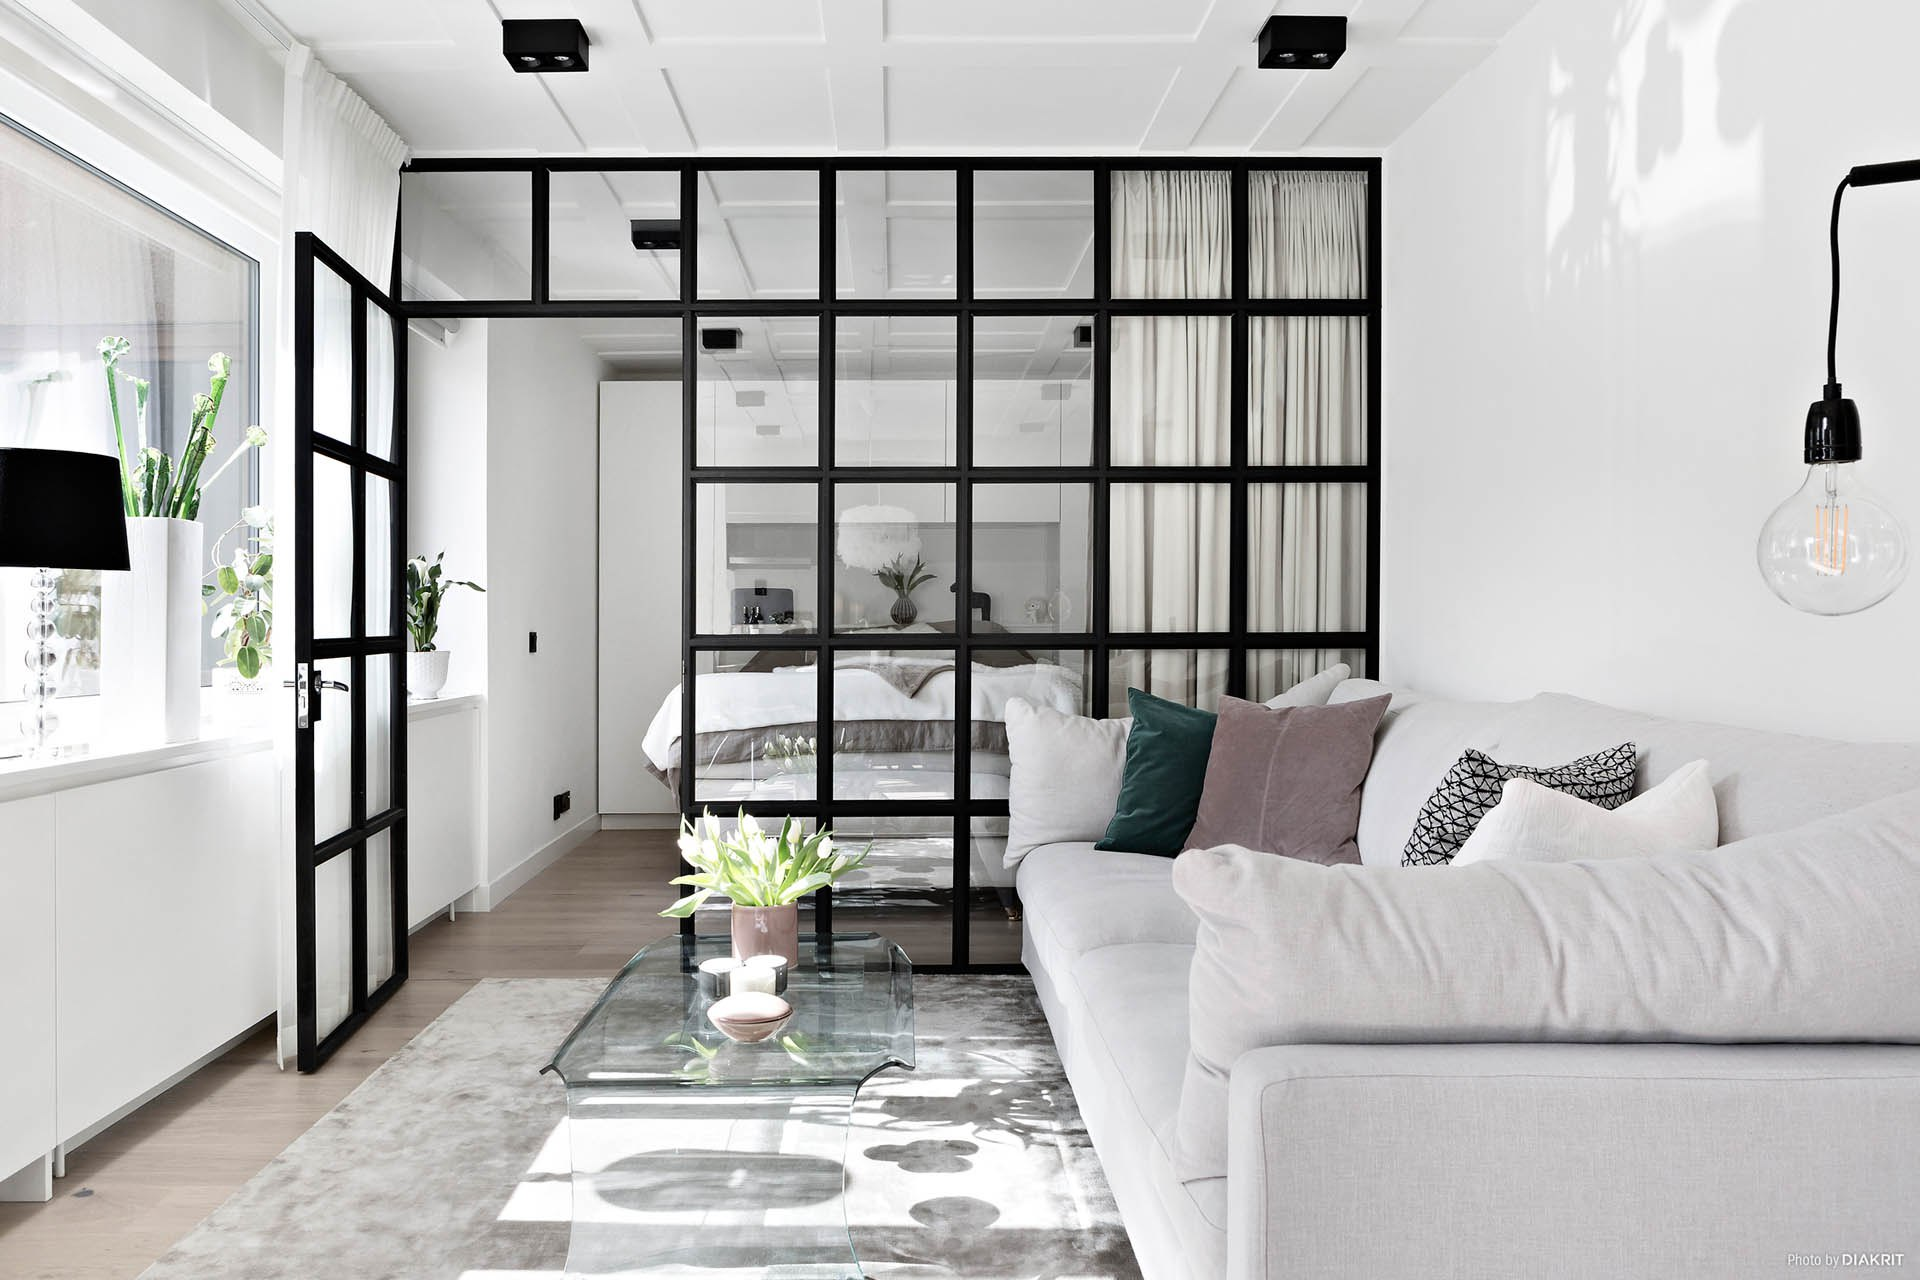 Whether It Is A Renovation Or A New Construction As Here, This Decorative  Element Replaces The Solid Partitions In The Small Apartments, Retaining  The ...